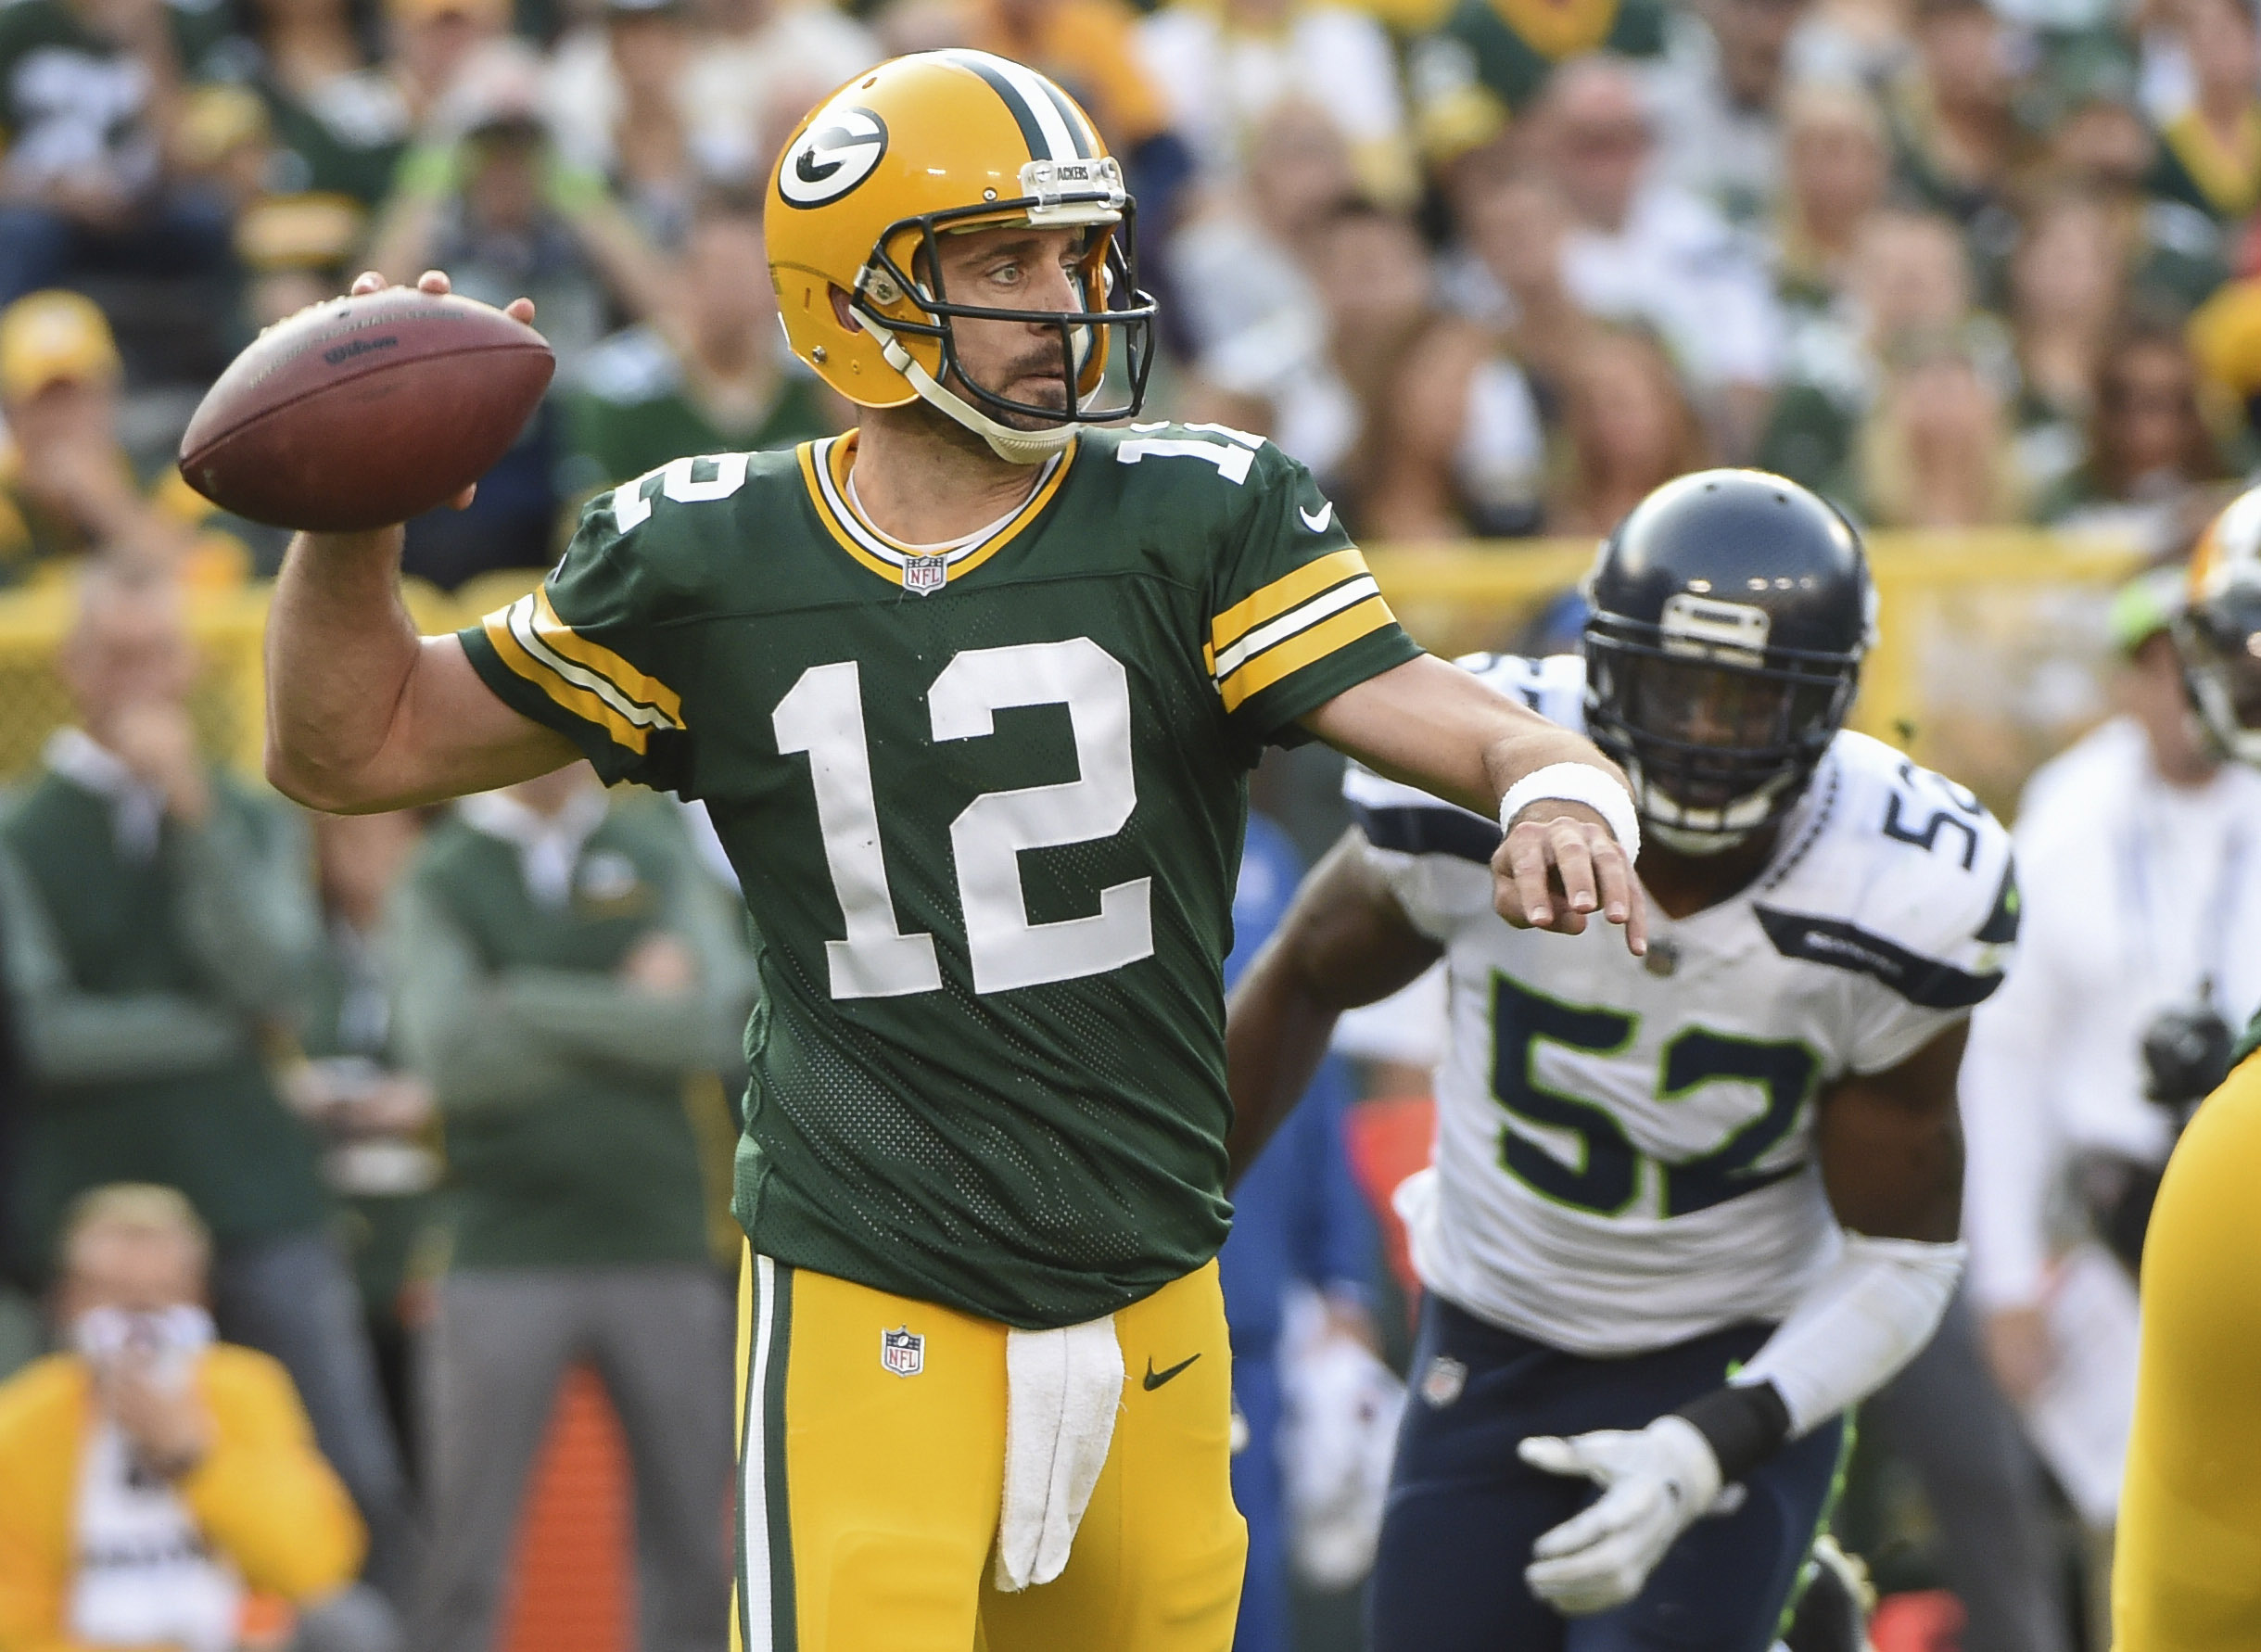 Six Key Factors That Will Determine the Winner of Packers vs Seahawks